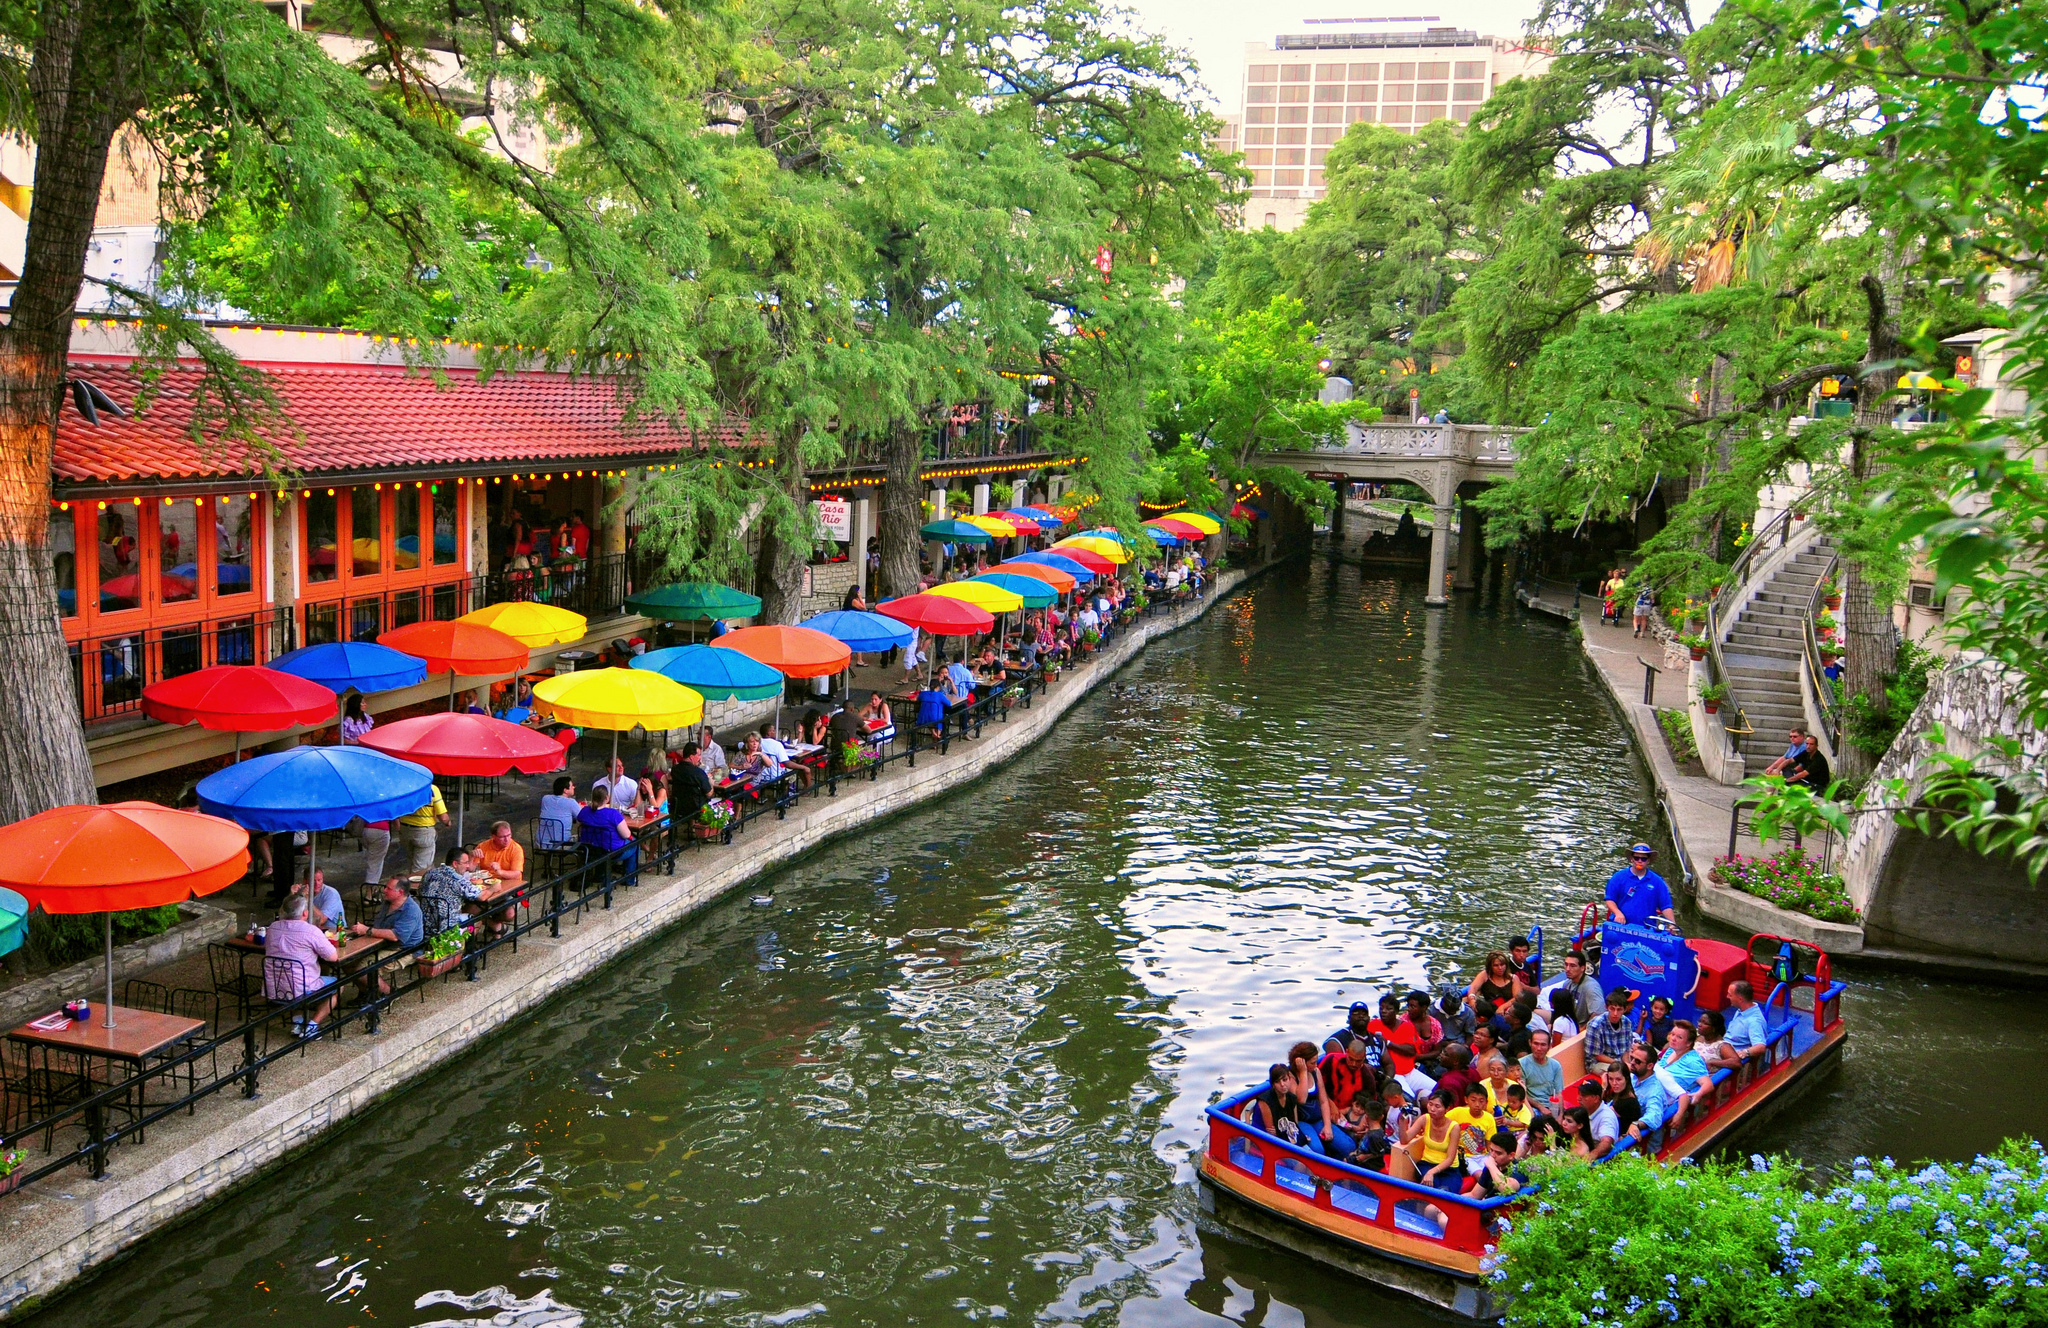 This Is The Best City In Texas And Possibly The Whole